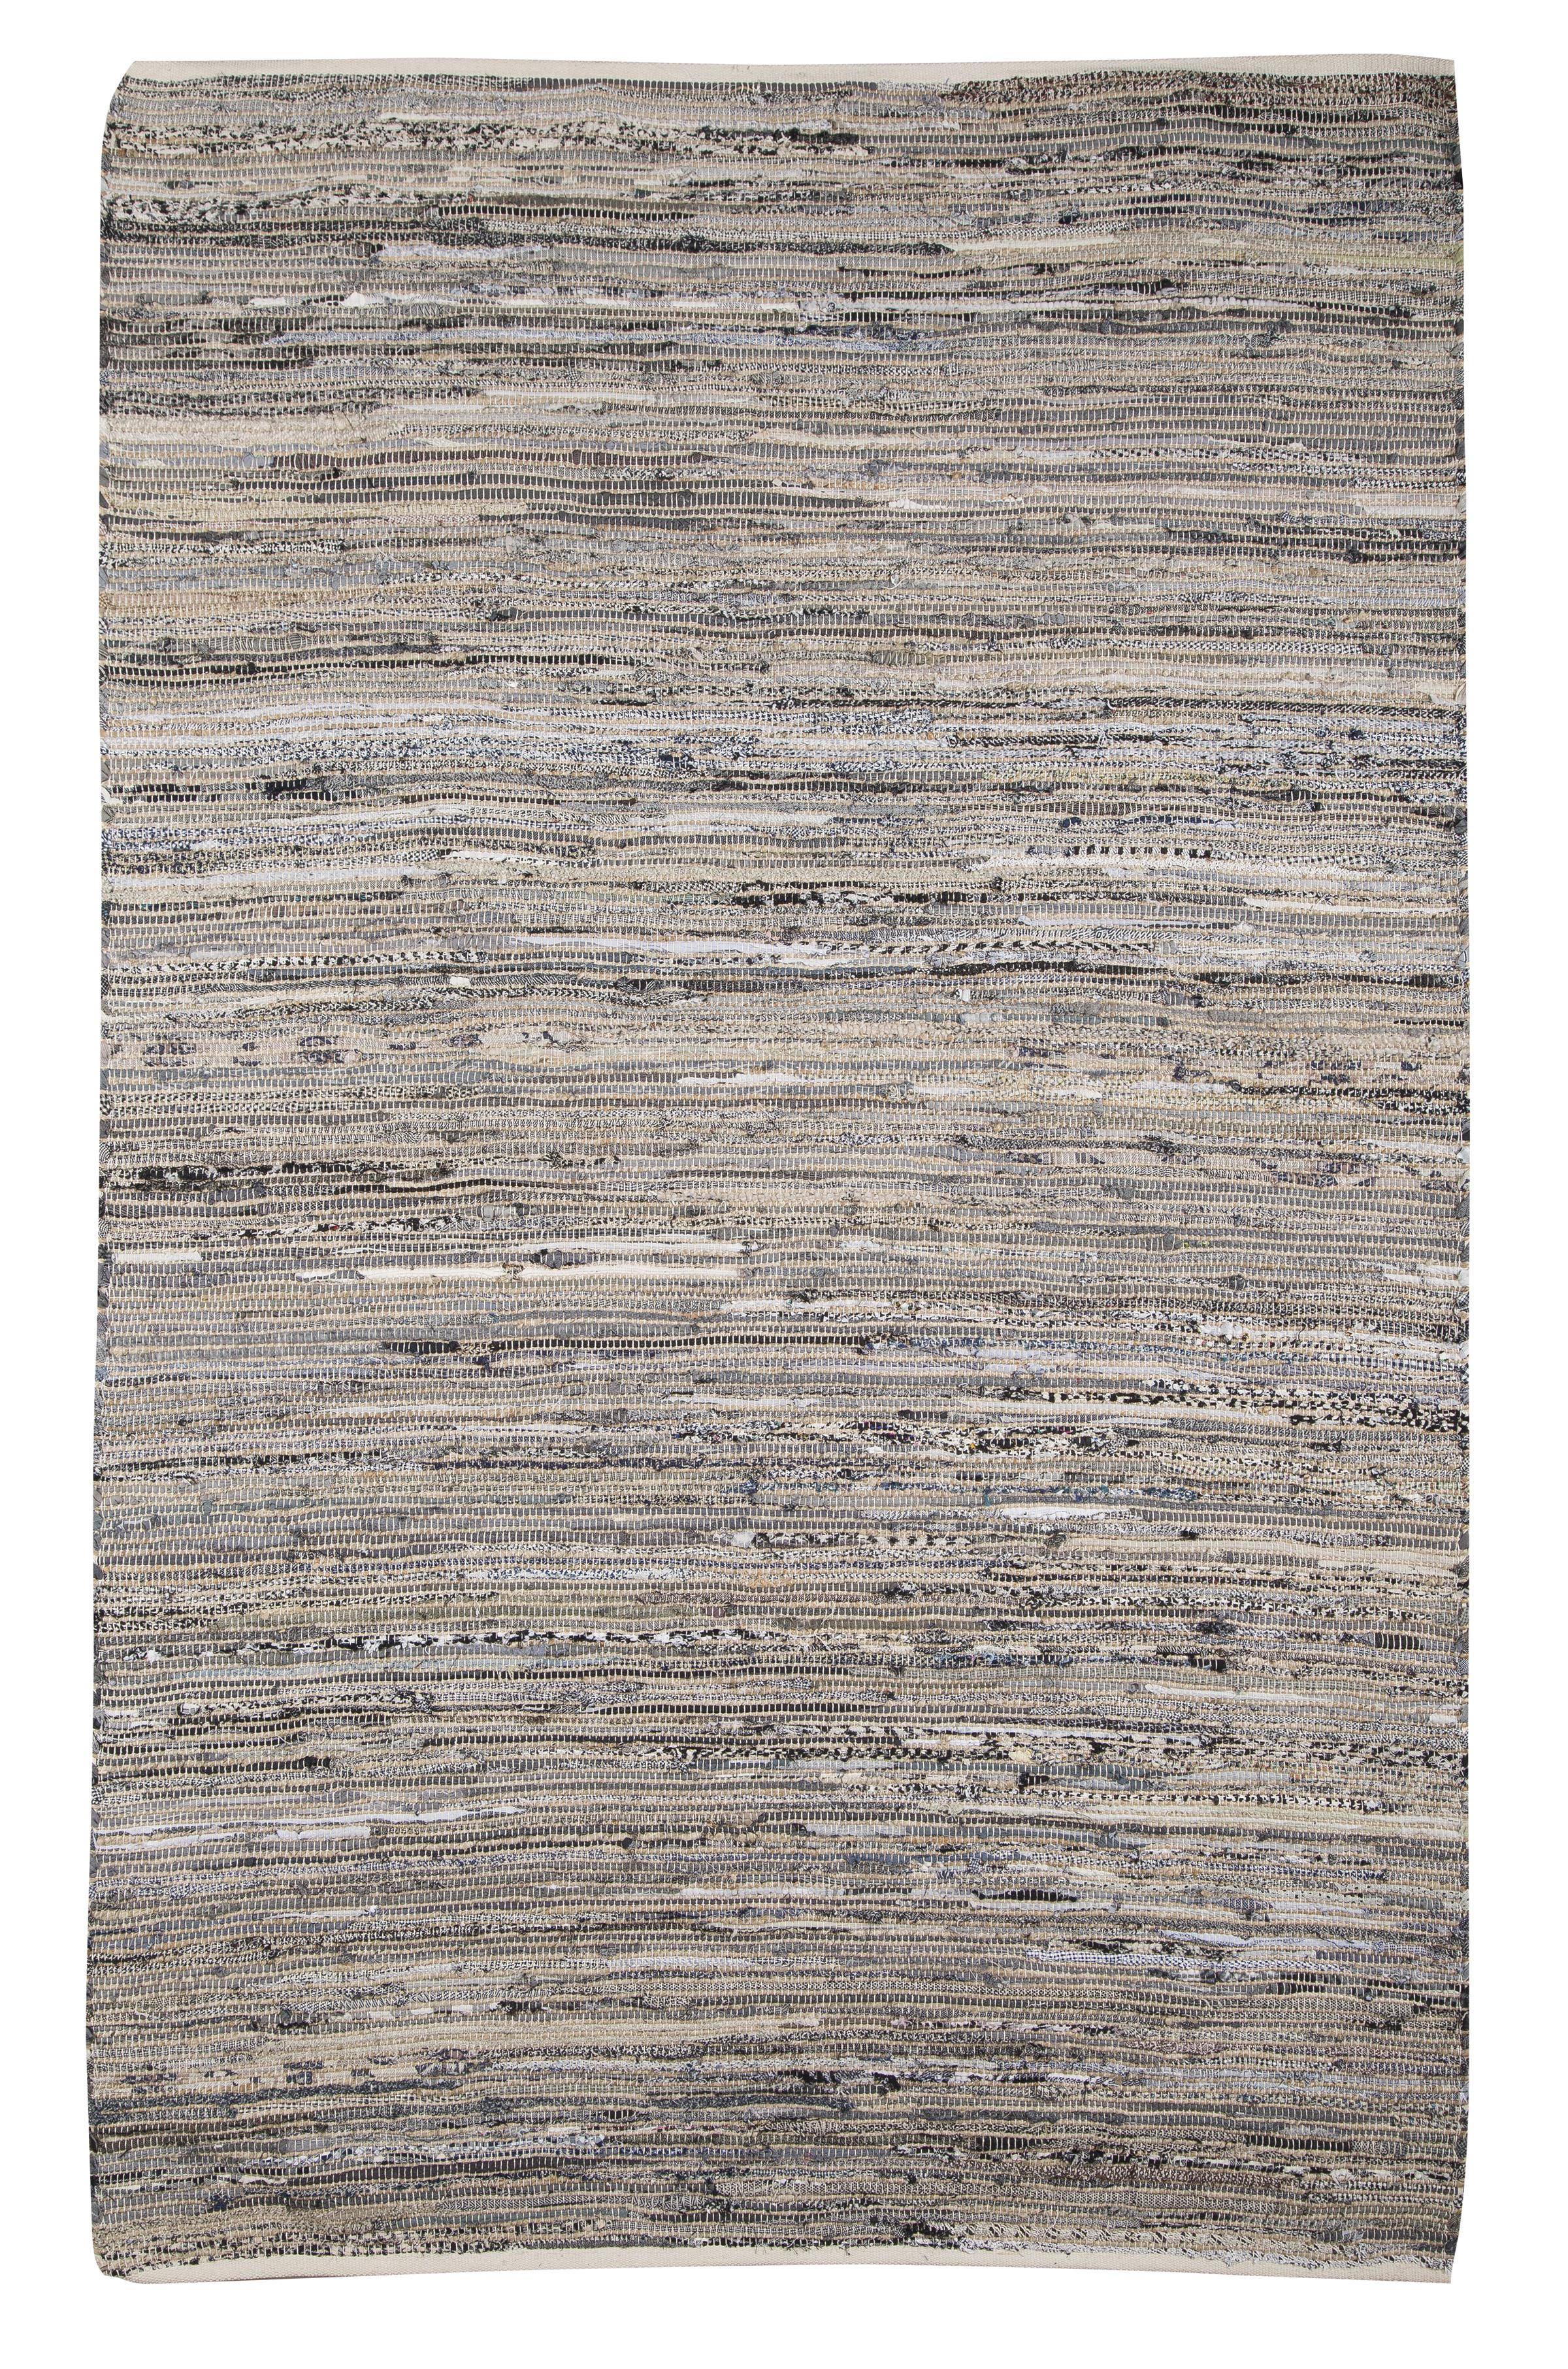 Signature Design by Ashley Contemporary Area Rugs Dismuke Natural Large Rug - Item Number: R400271